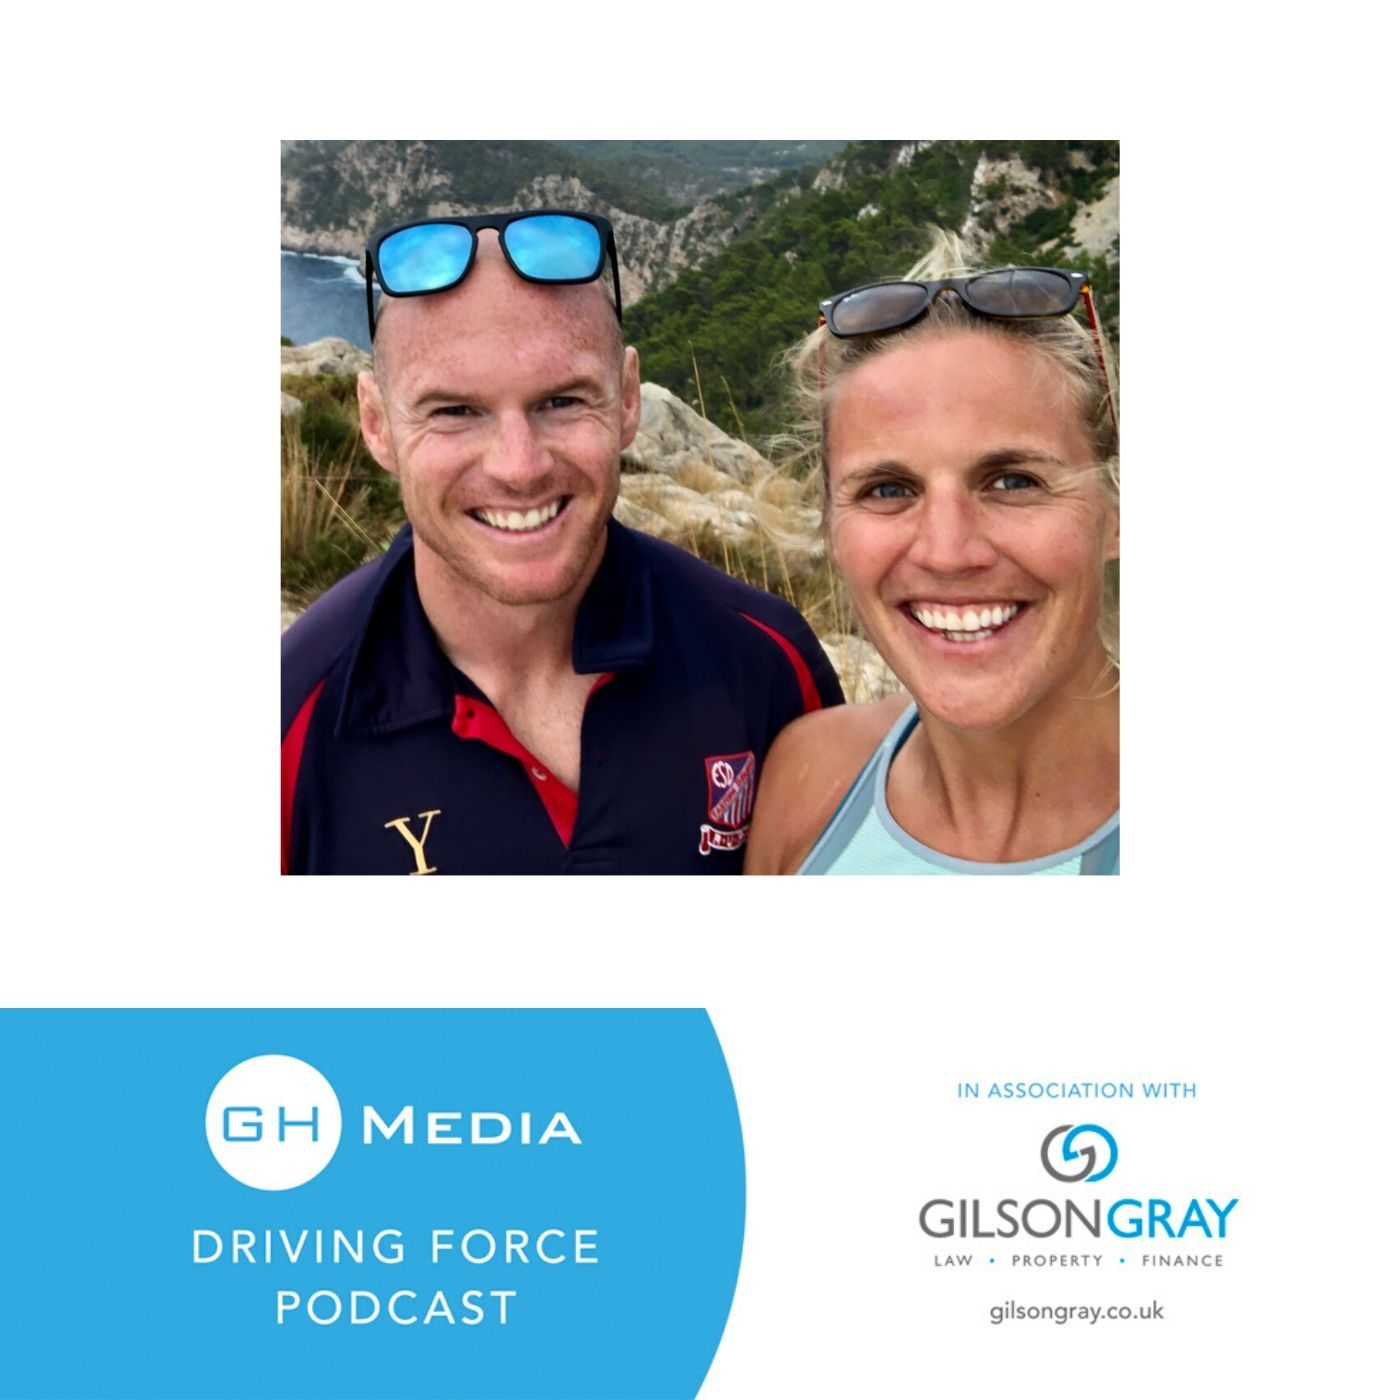 GH Media Driving Force Podcast - Episode 17